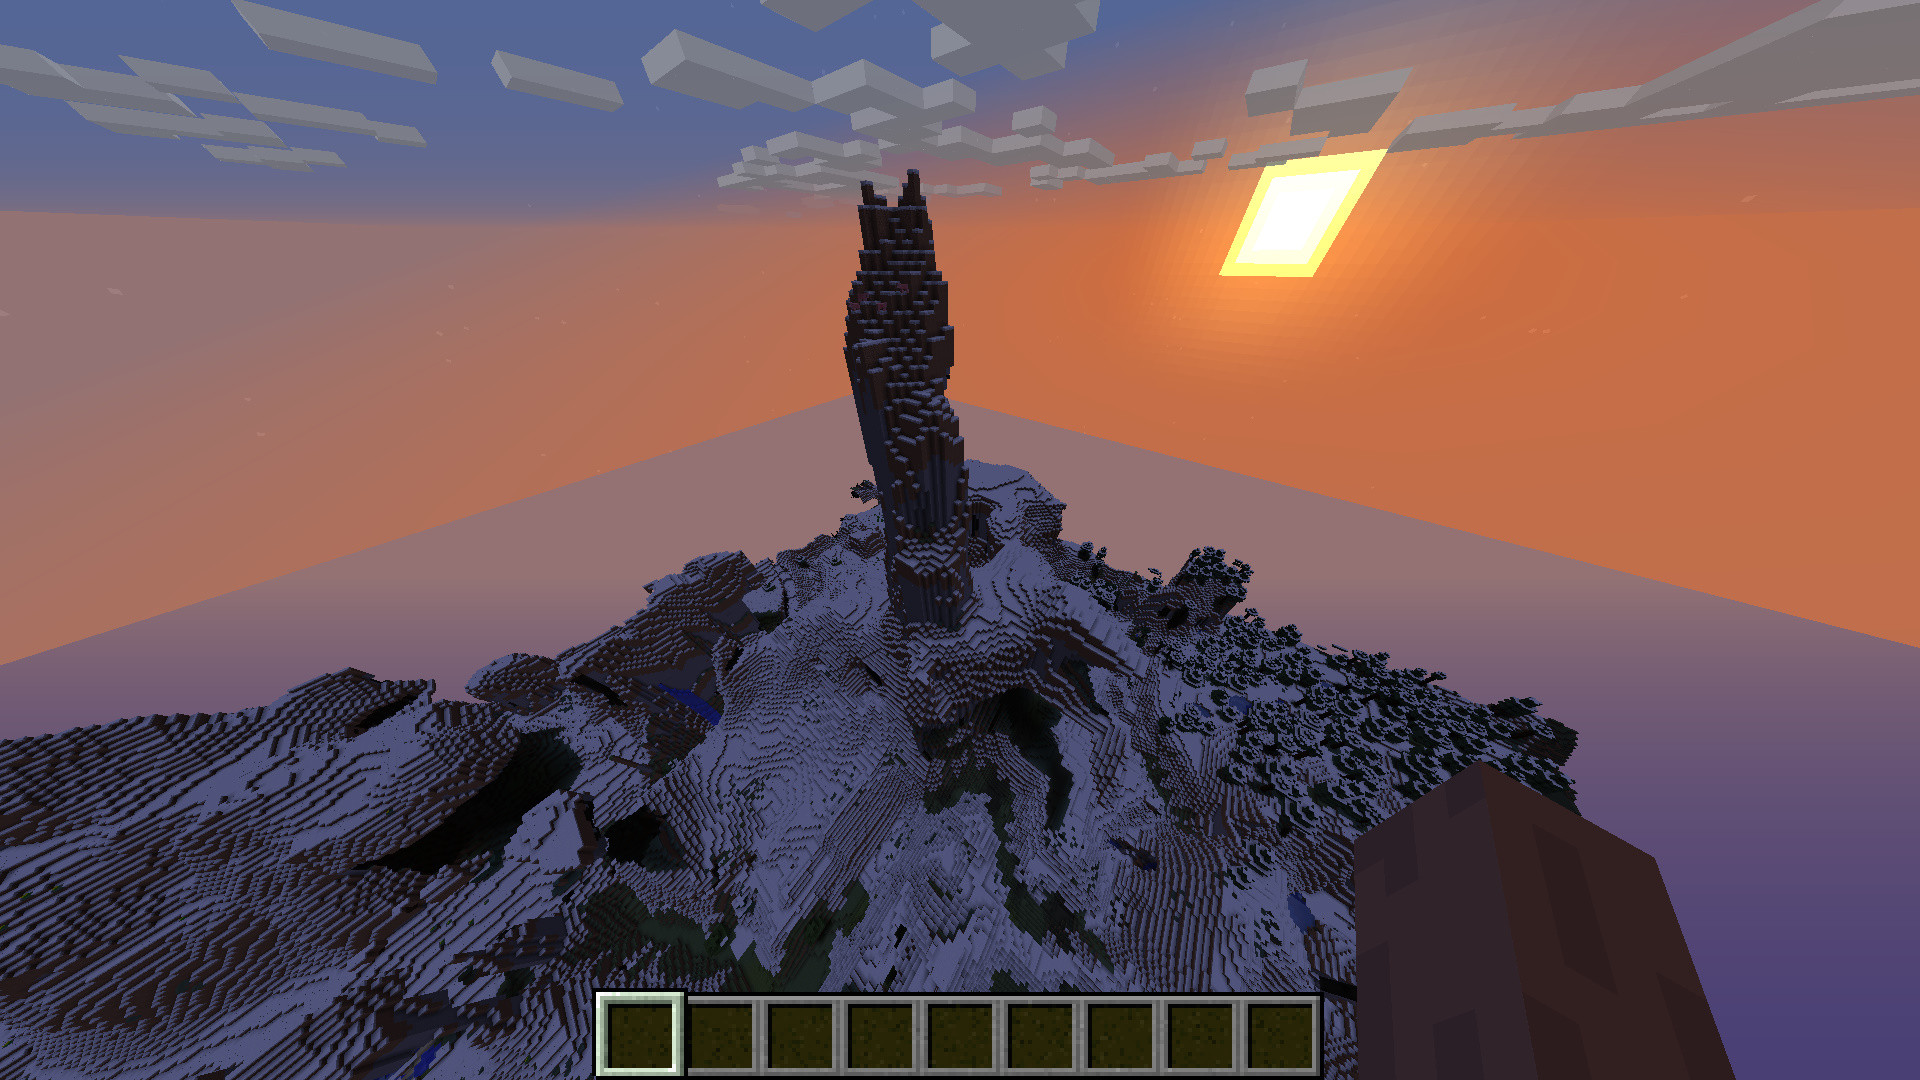 f5673  v8SbpI6 Insane World Generation Screenshots